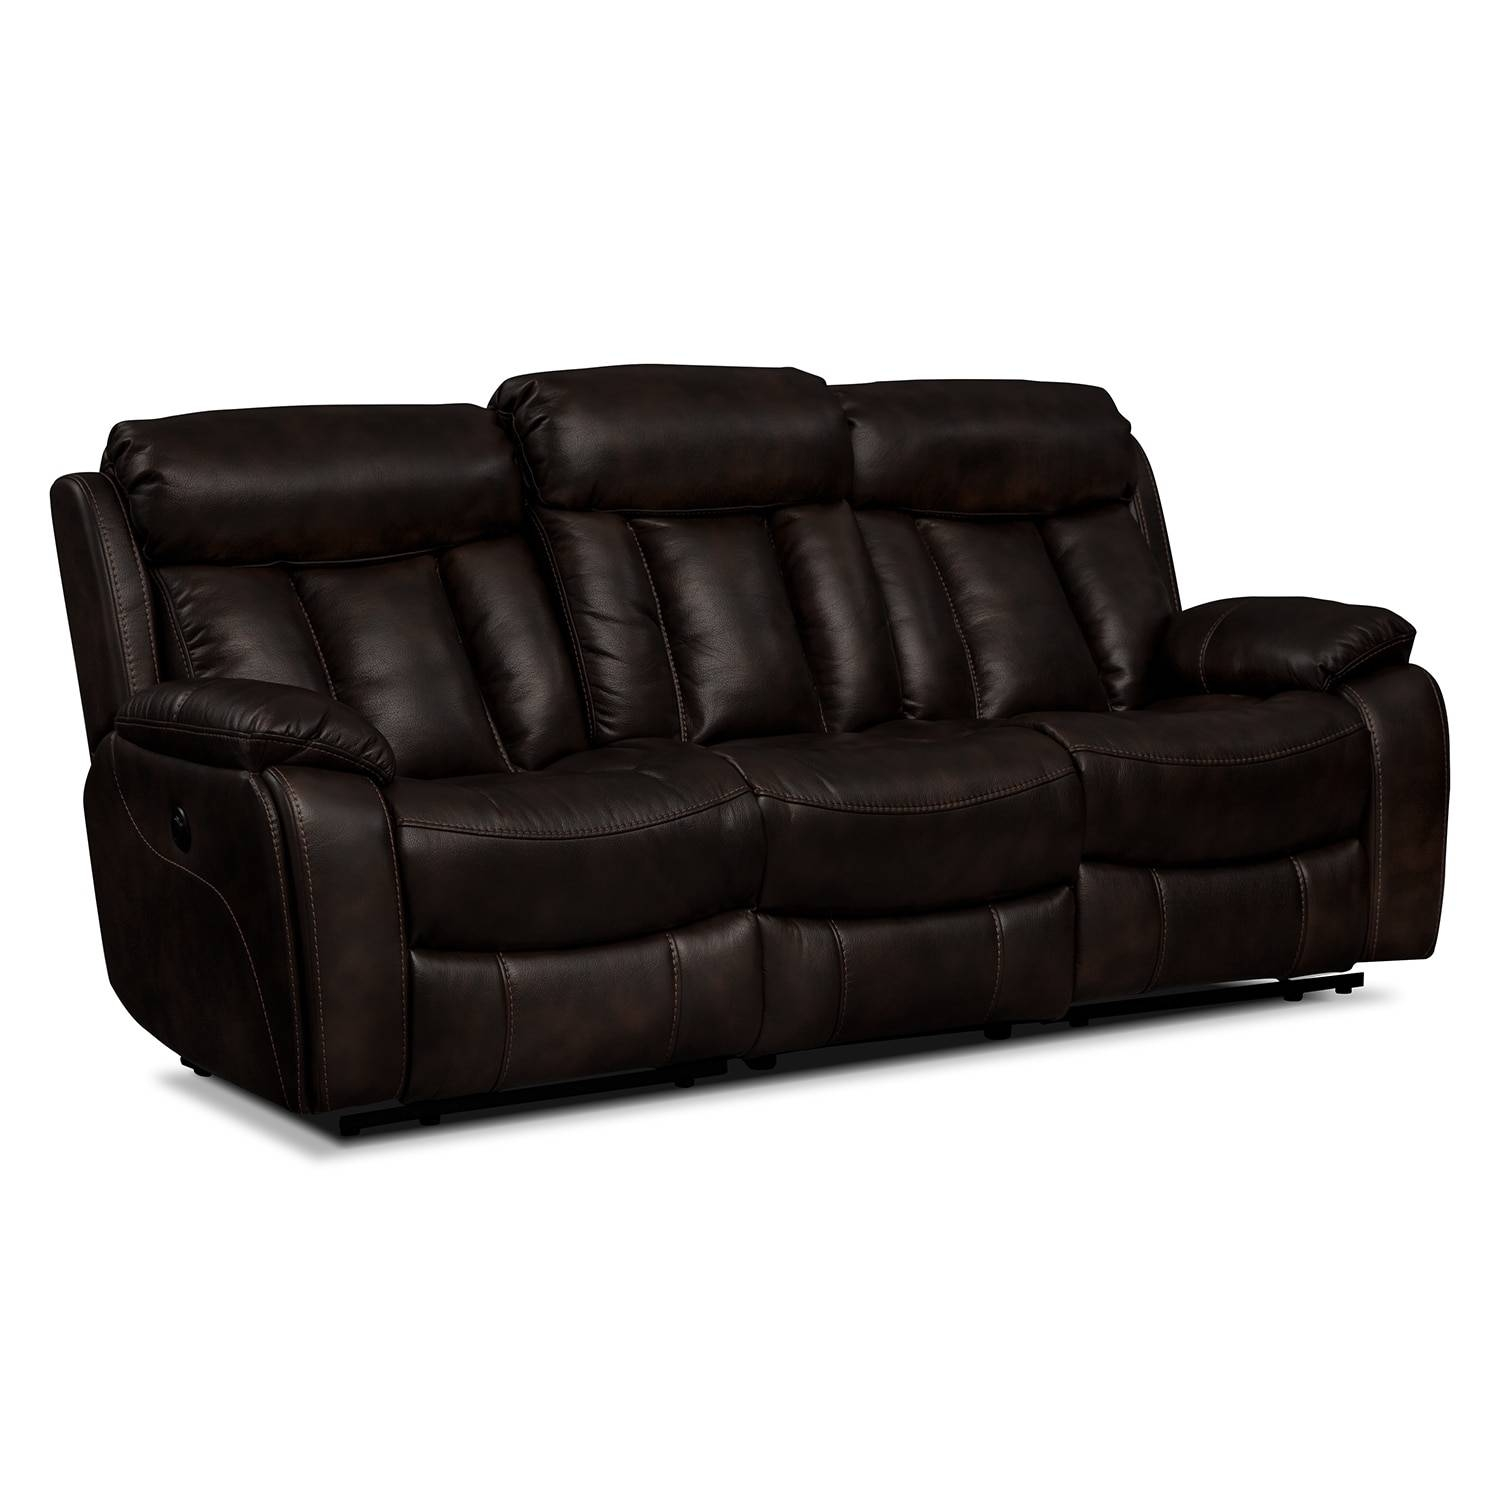 Diablo Power Reclining Sofa - Walnut | American Signature Furniture inside Recliner Sofa Chairs (Image 12 of 30)